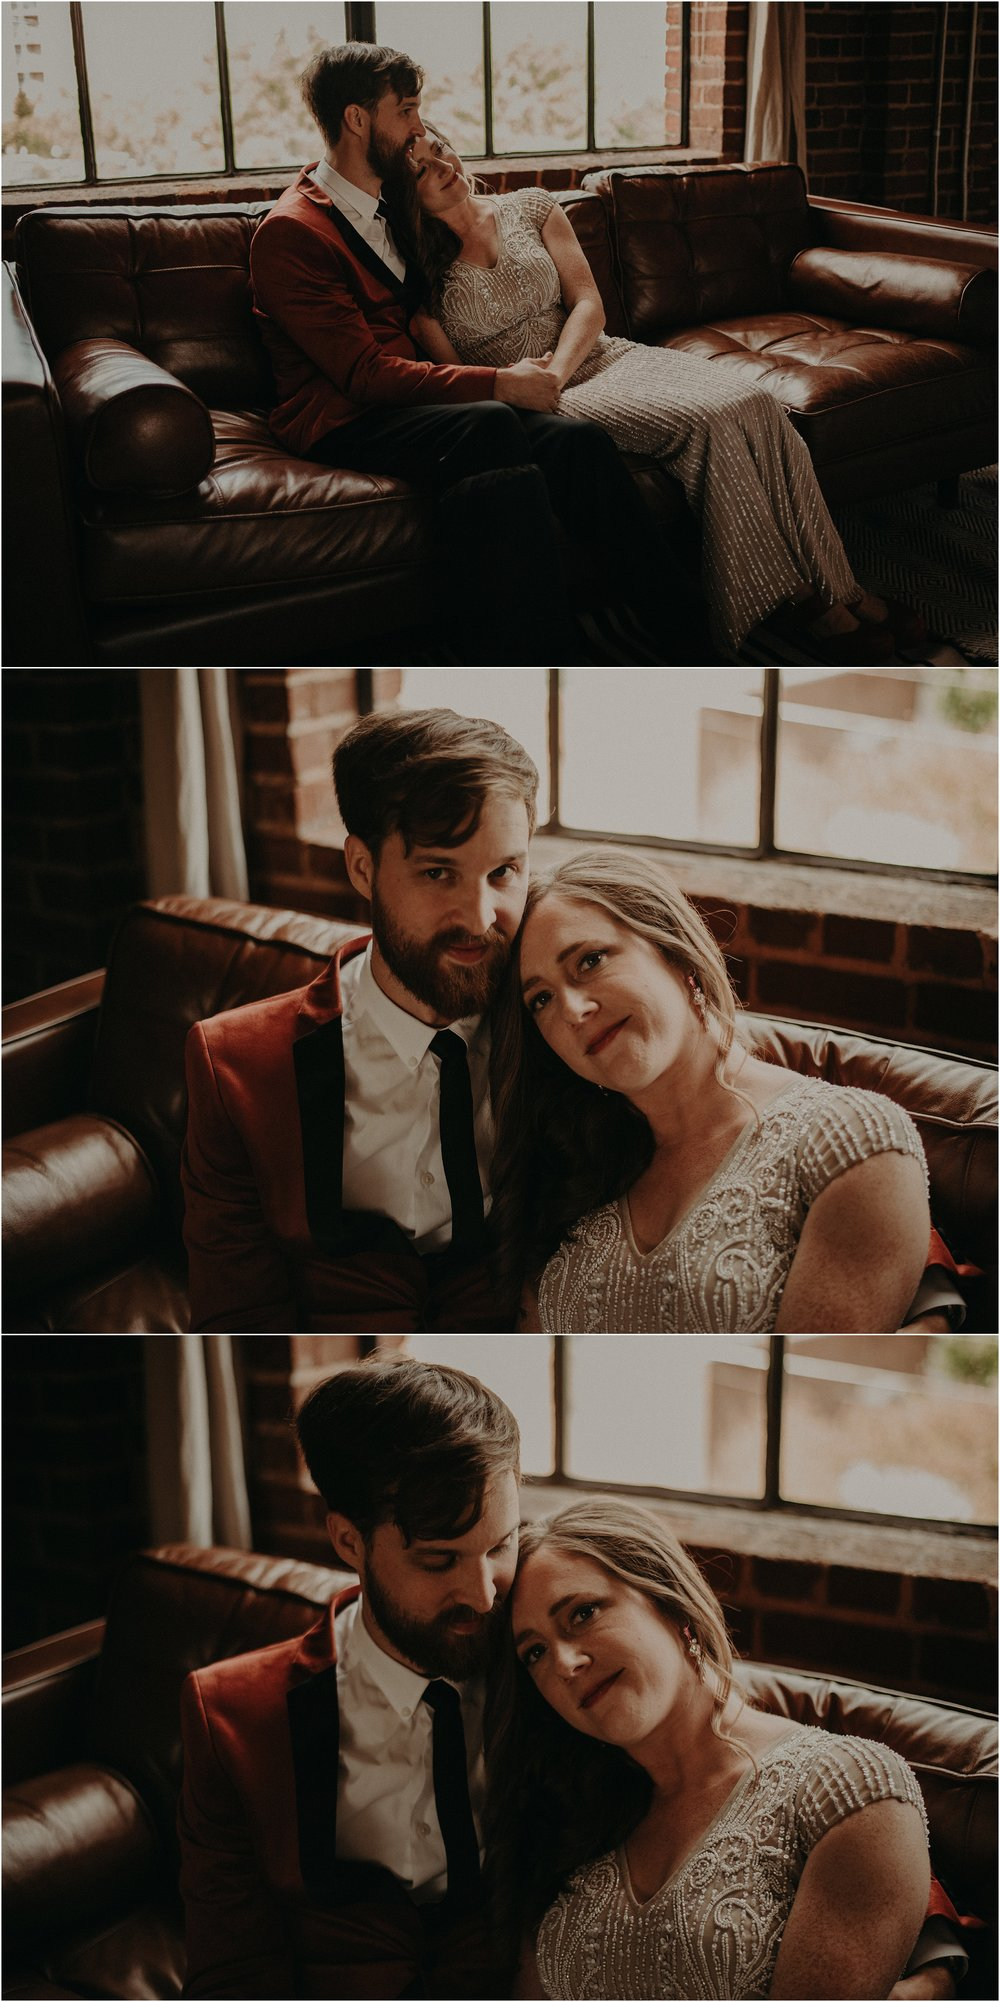 The last moments before they're officially husband and wife